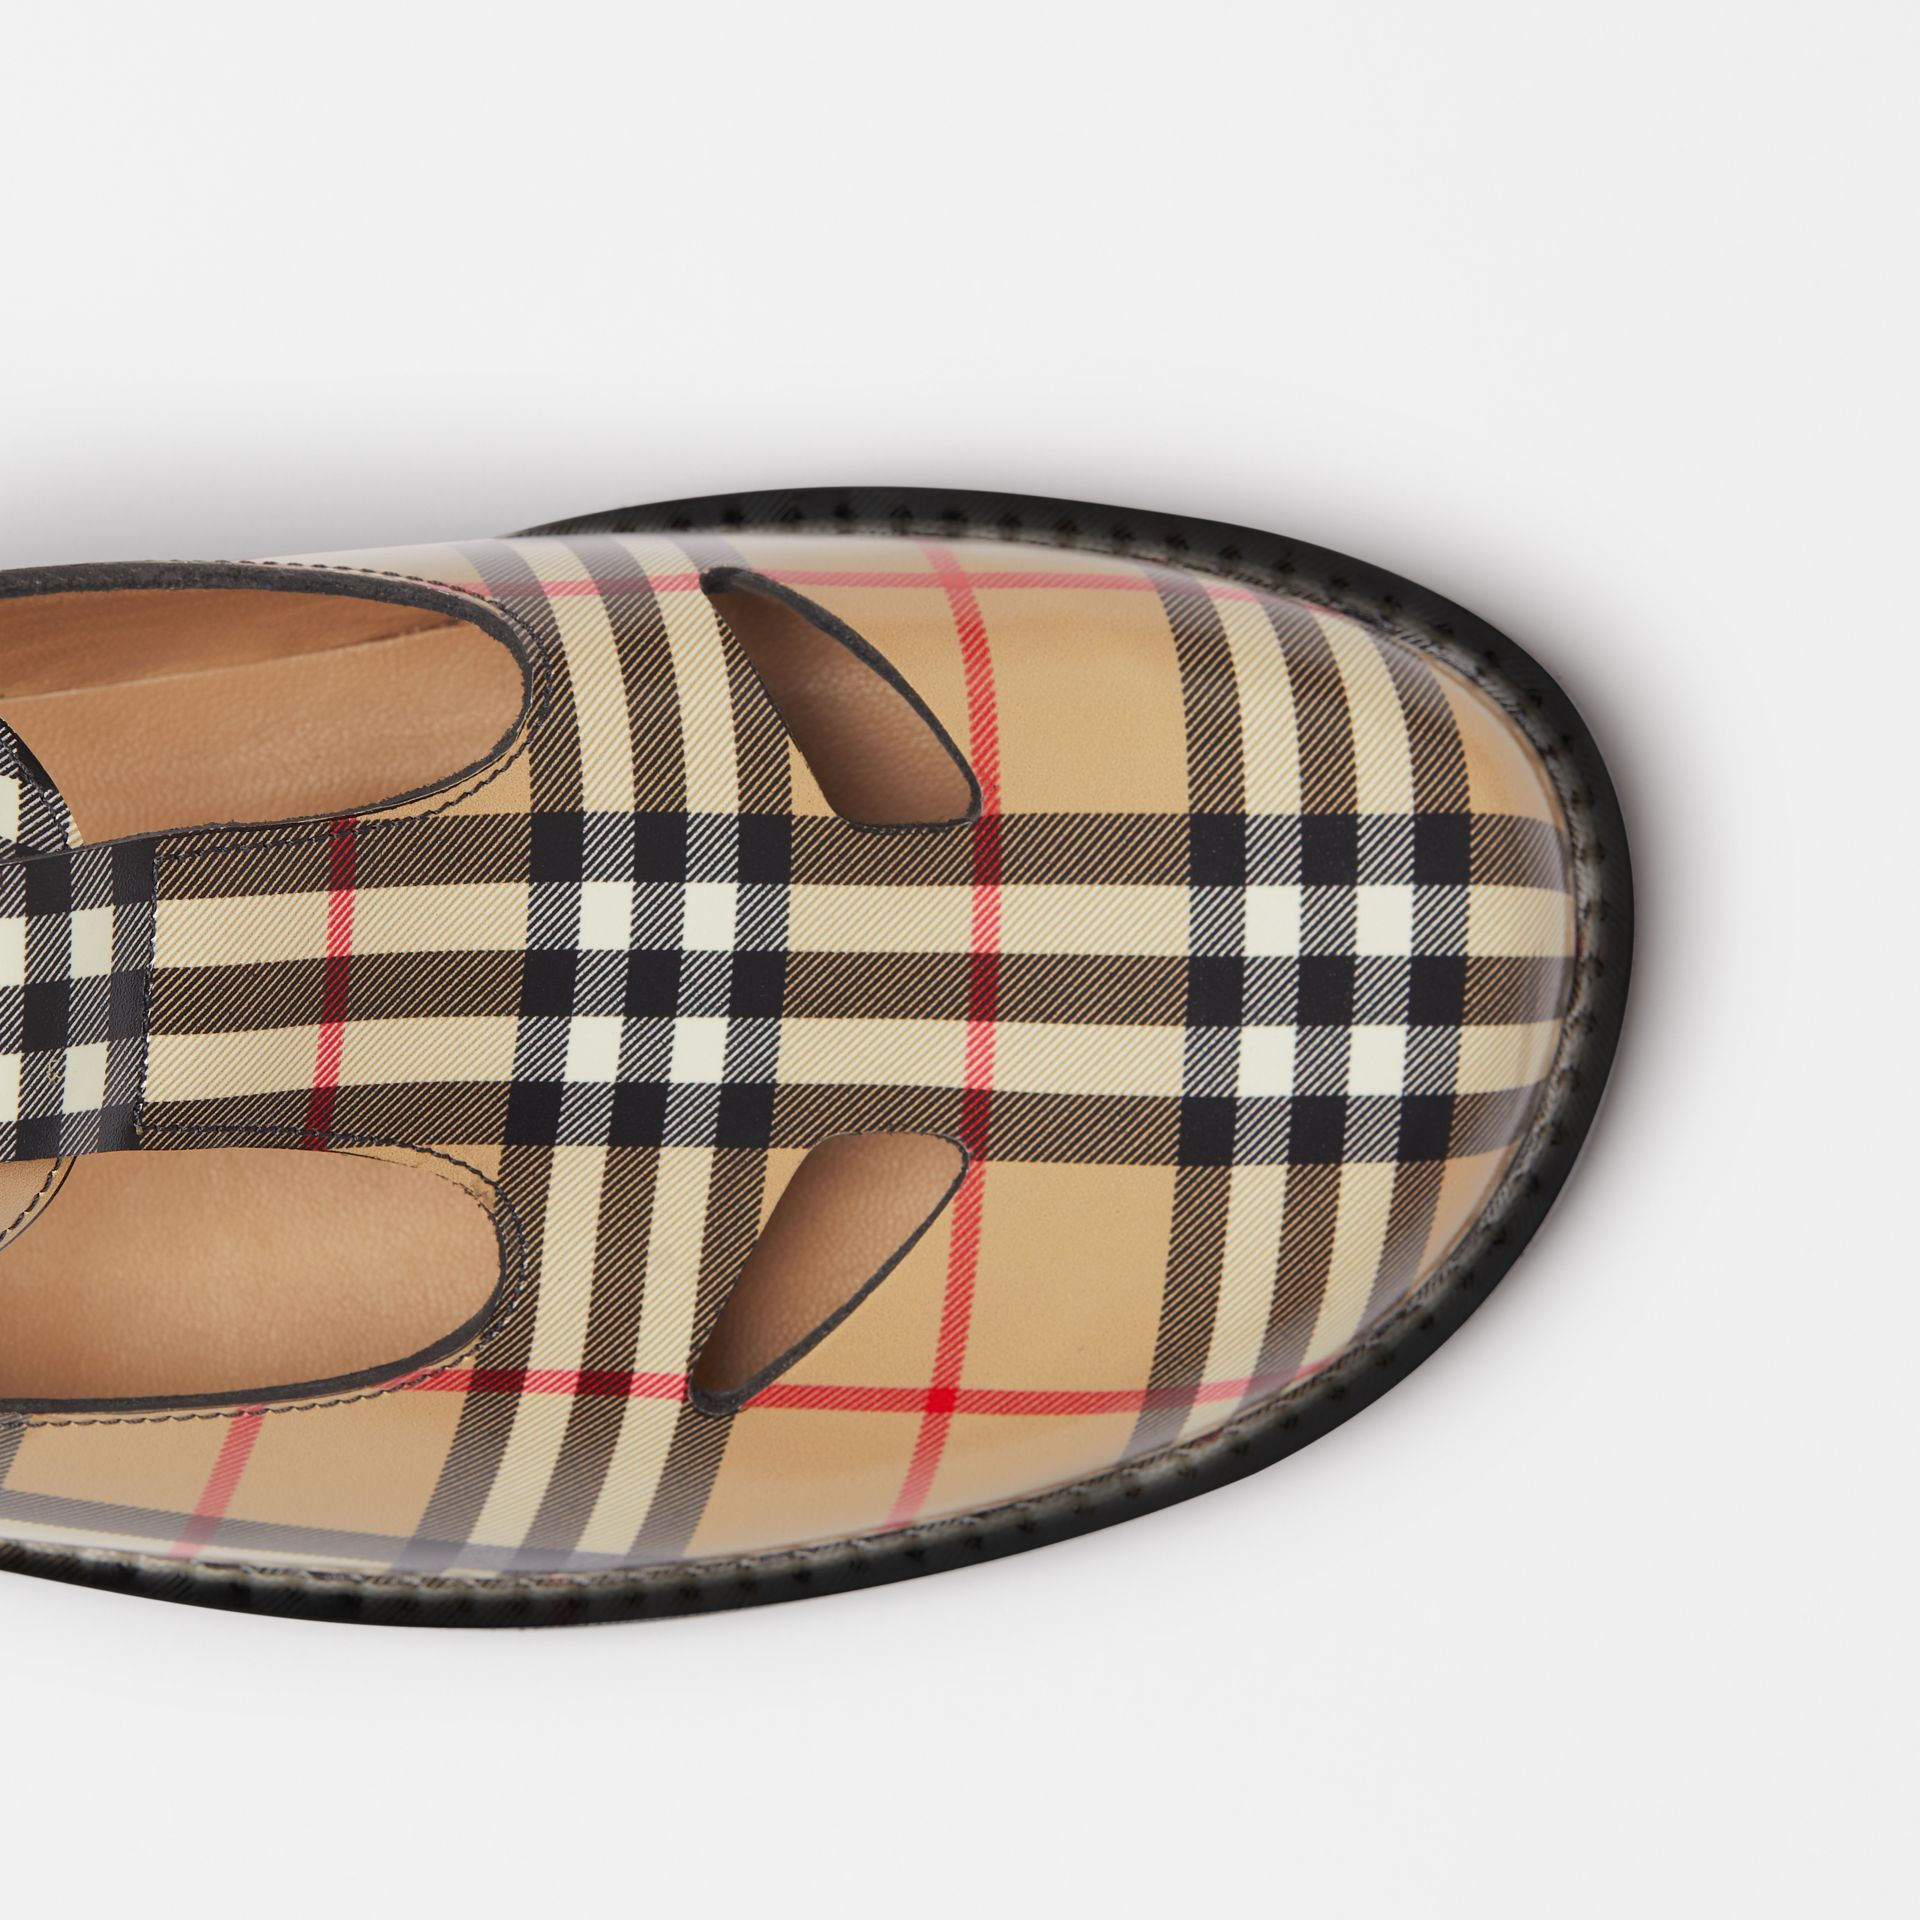 Vintage Check Leather T-bar Shoes in Archive Beige - Women | Burberry Canada - gallery image 1